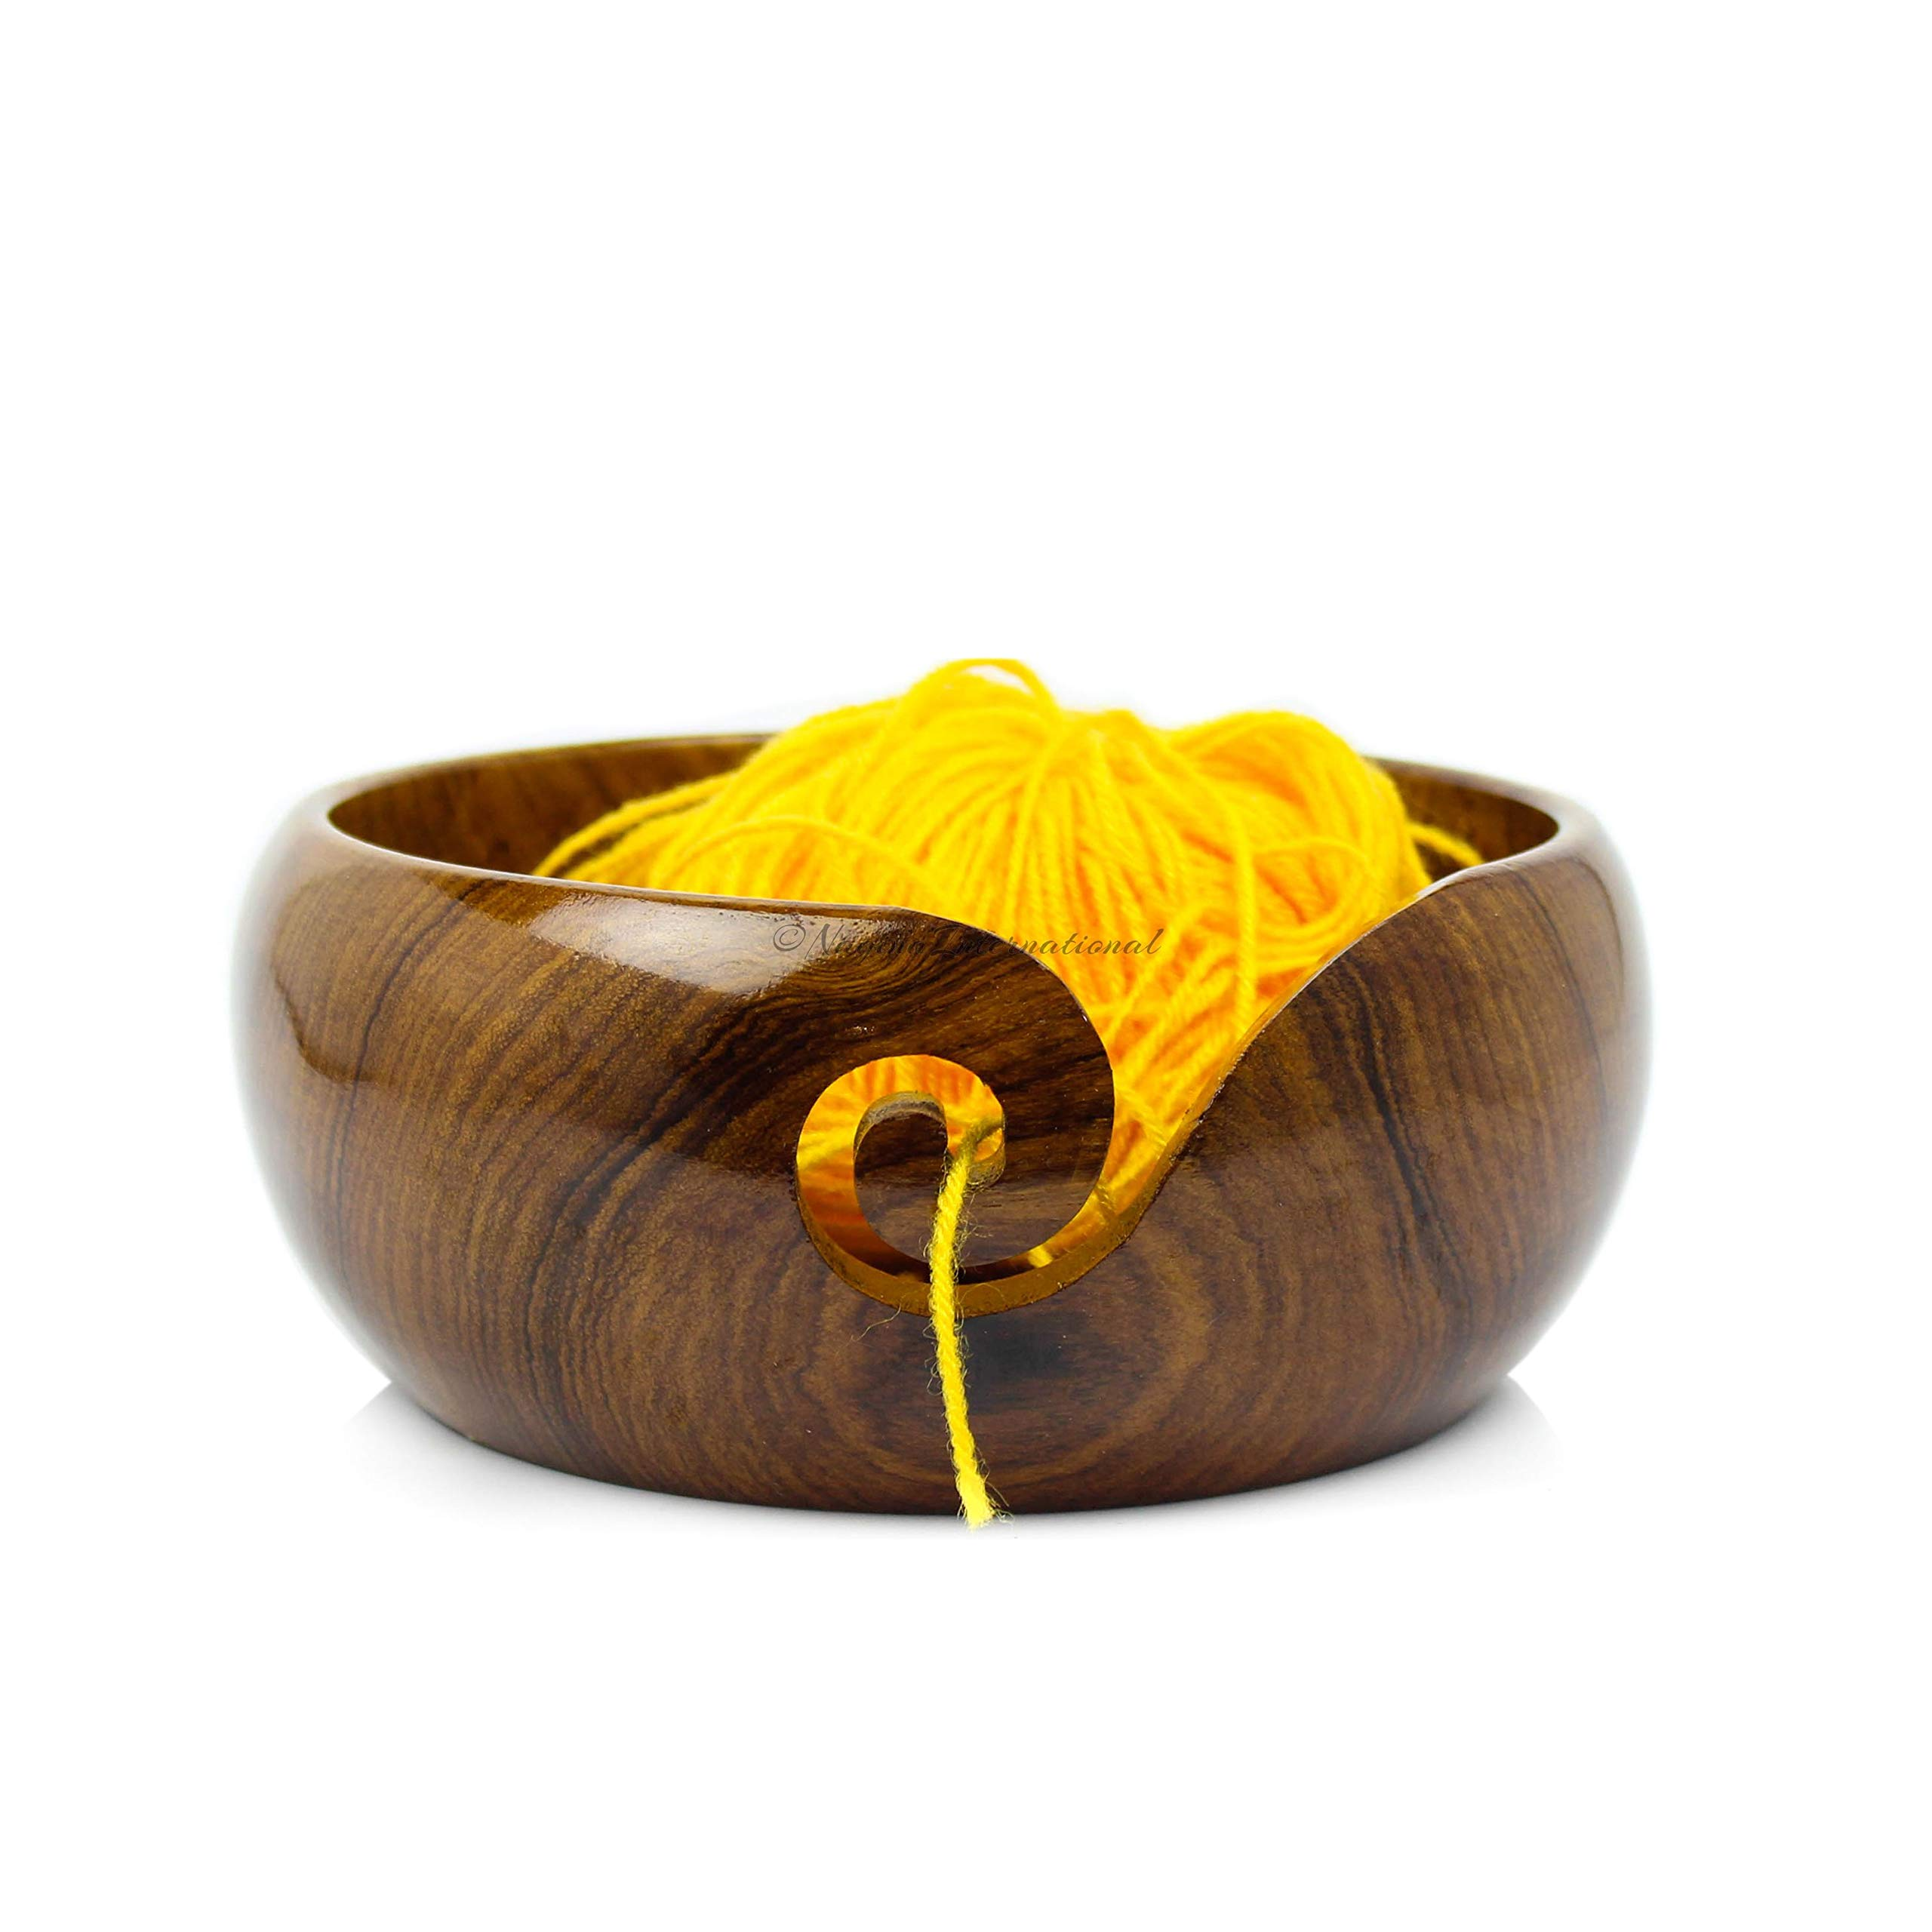 Nagina International Premium Rosewood Crafted Portable Yarn Storage Functional Bowl with Spiral Yarn Dispenser | Crocheting & Stitching Accessories (Medium)